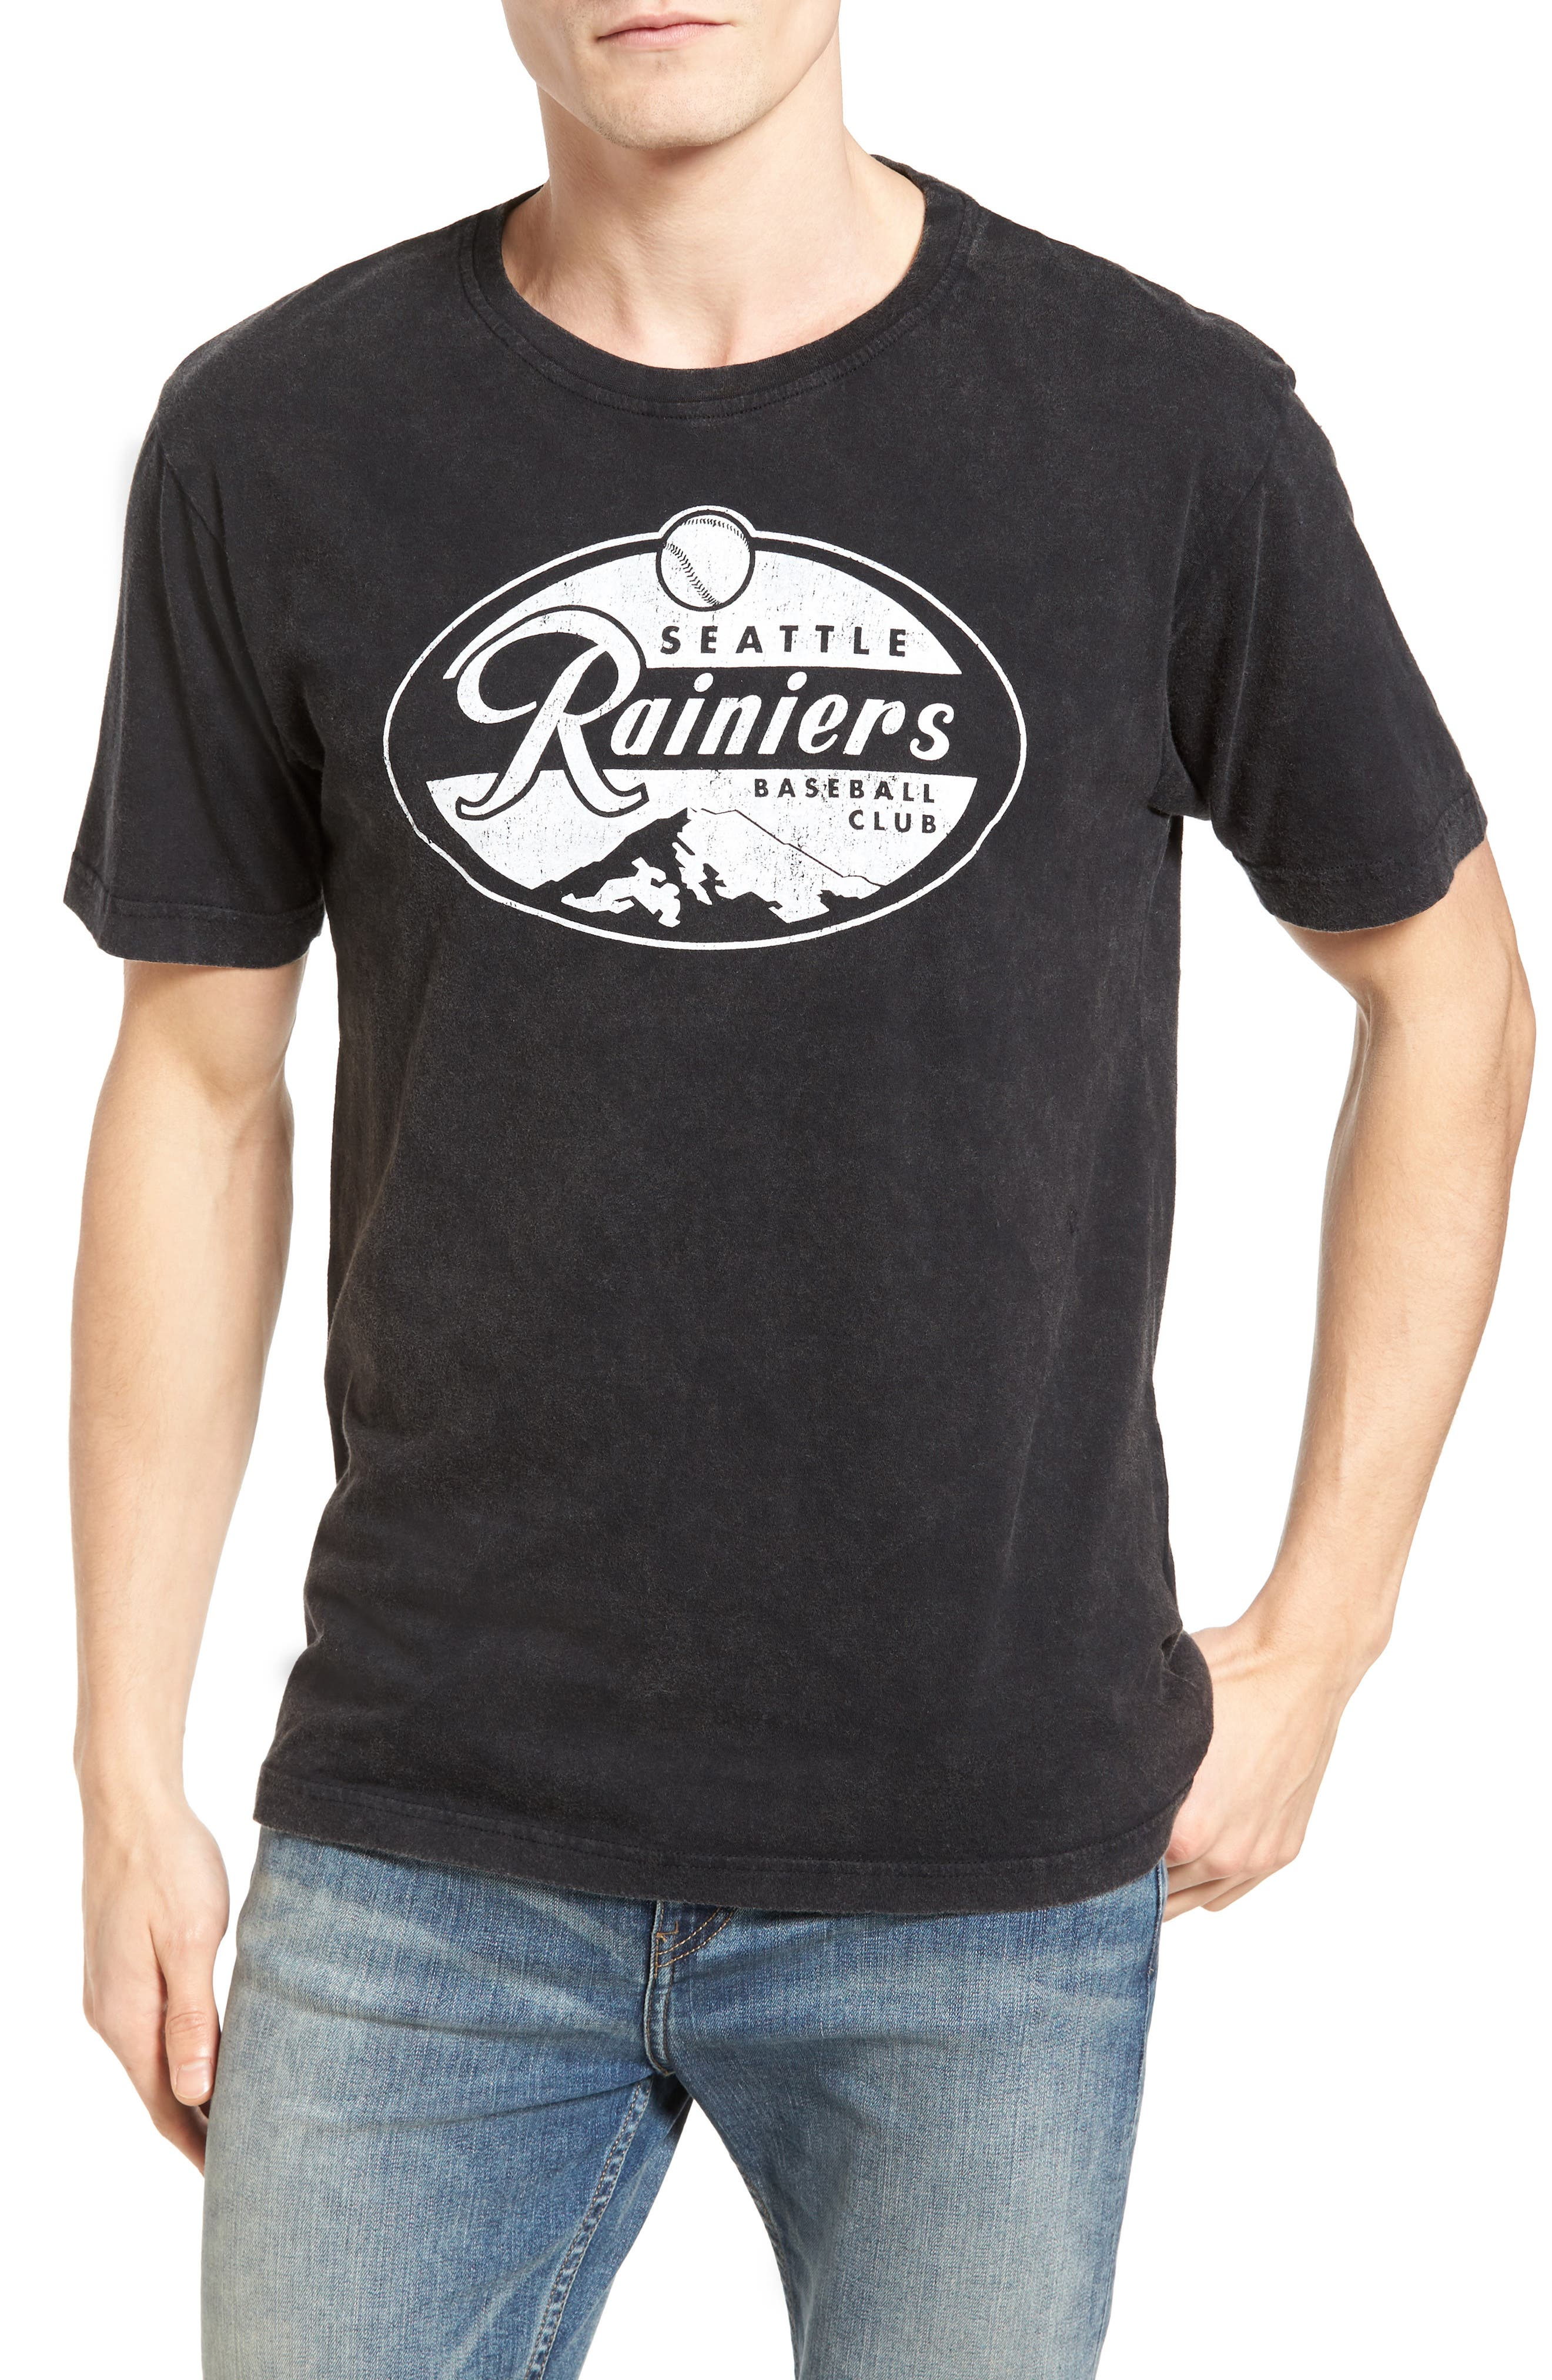 American Needle Brass Tack Seattle Rainiers T-Shirt